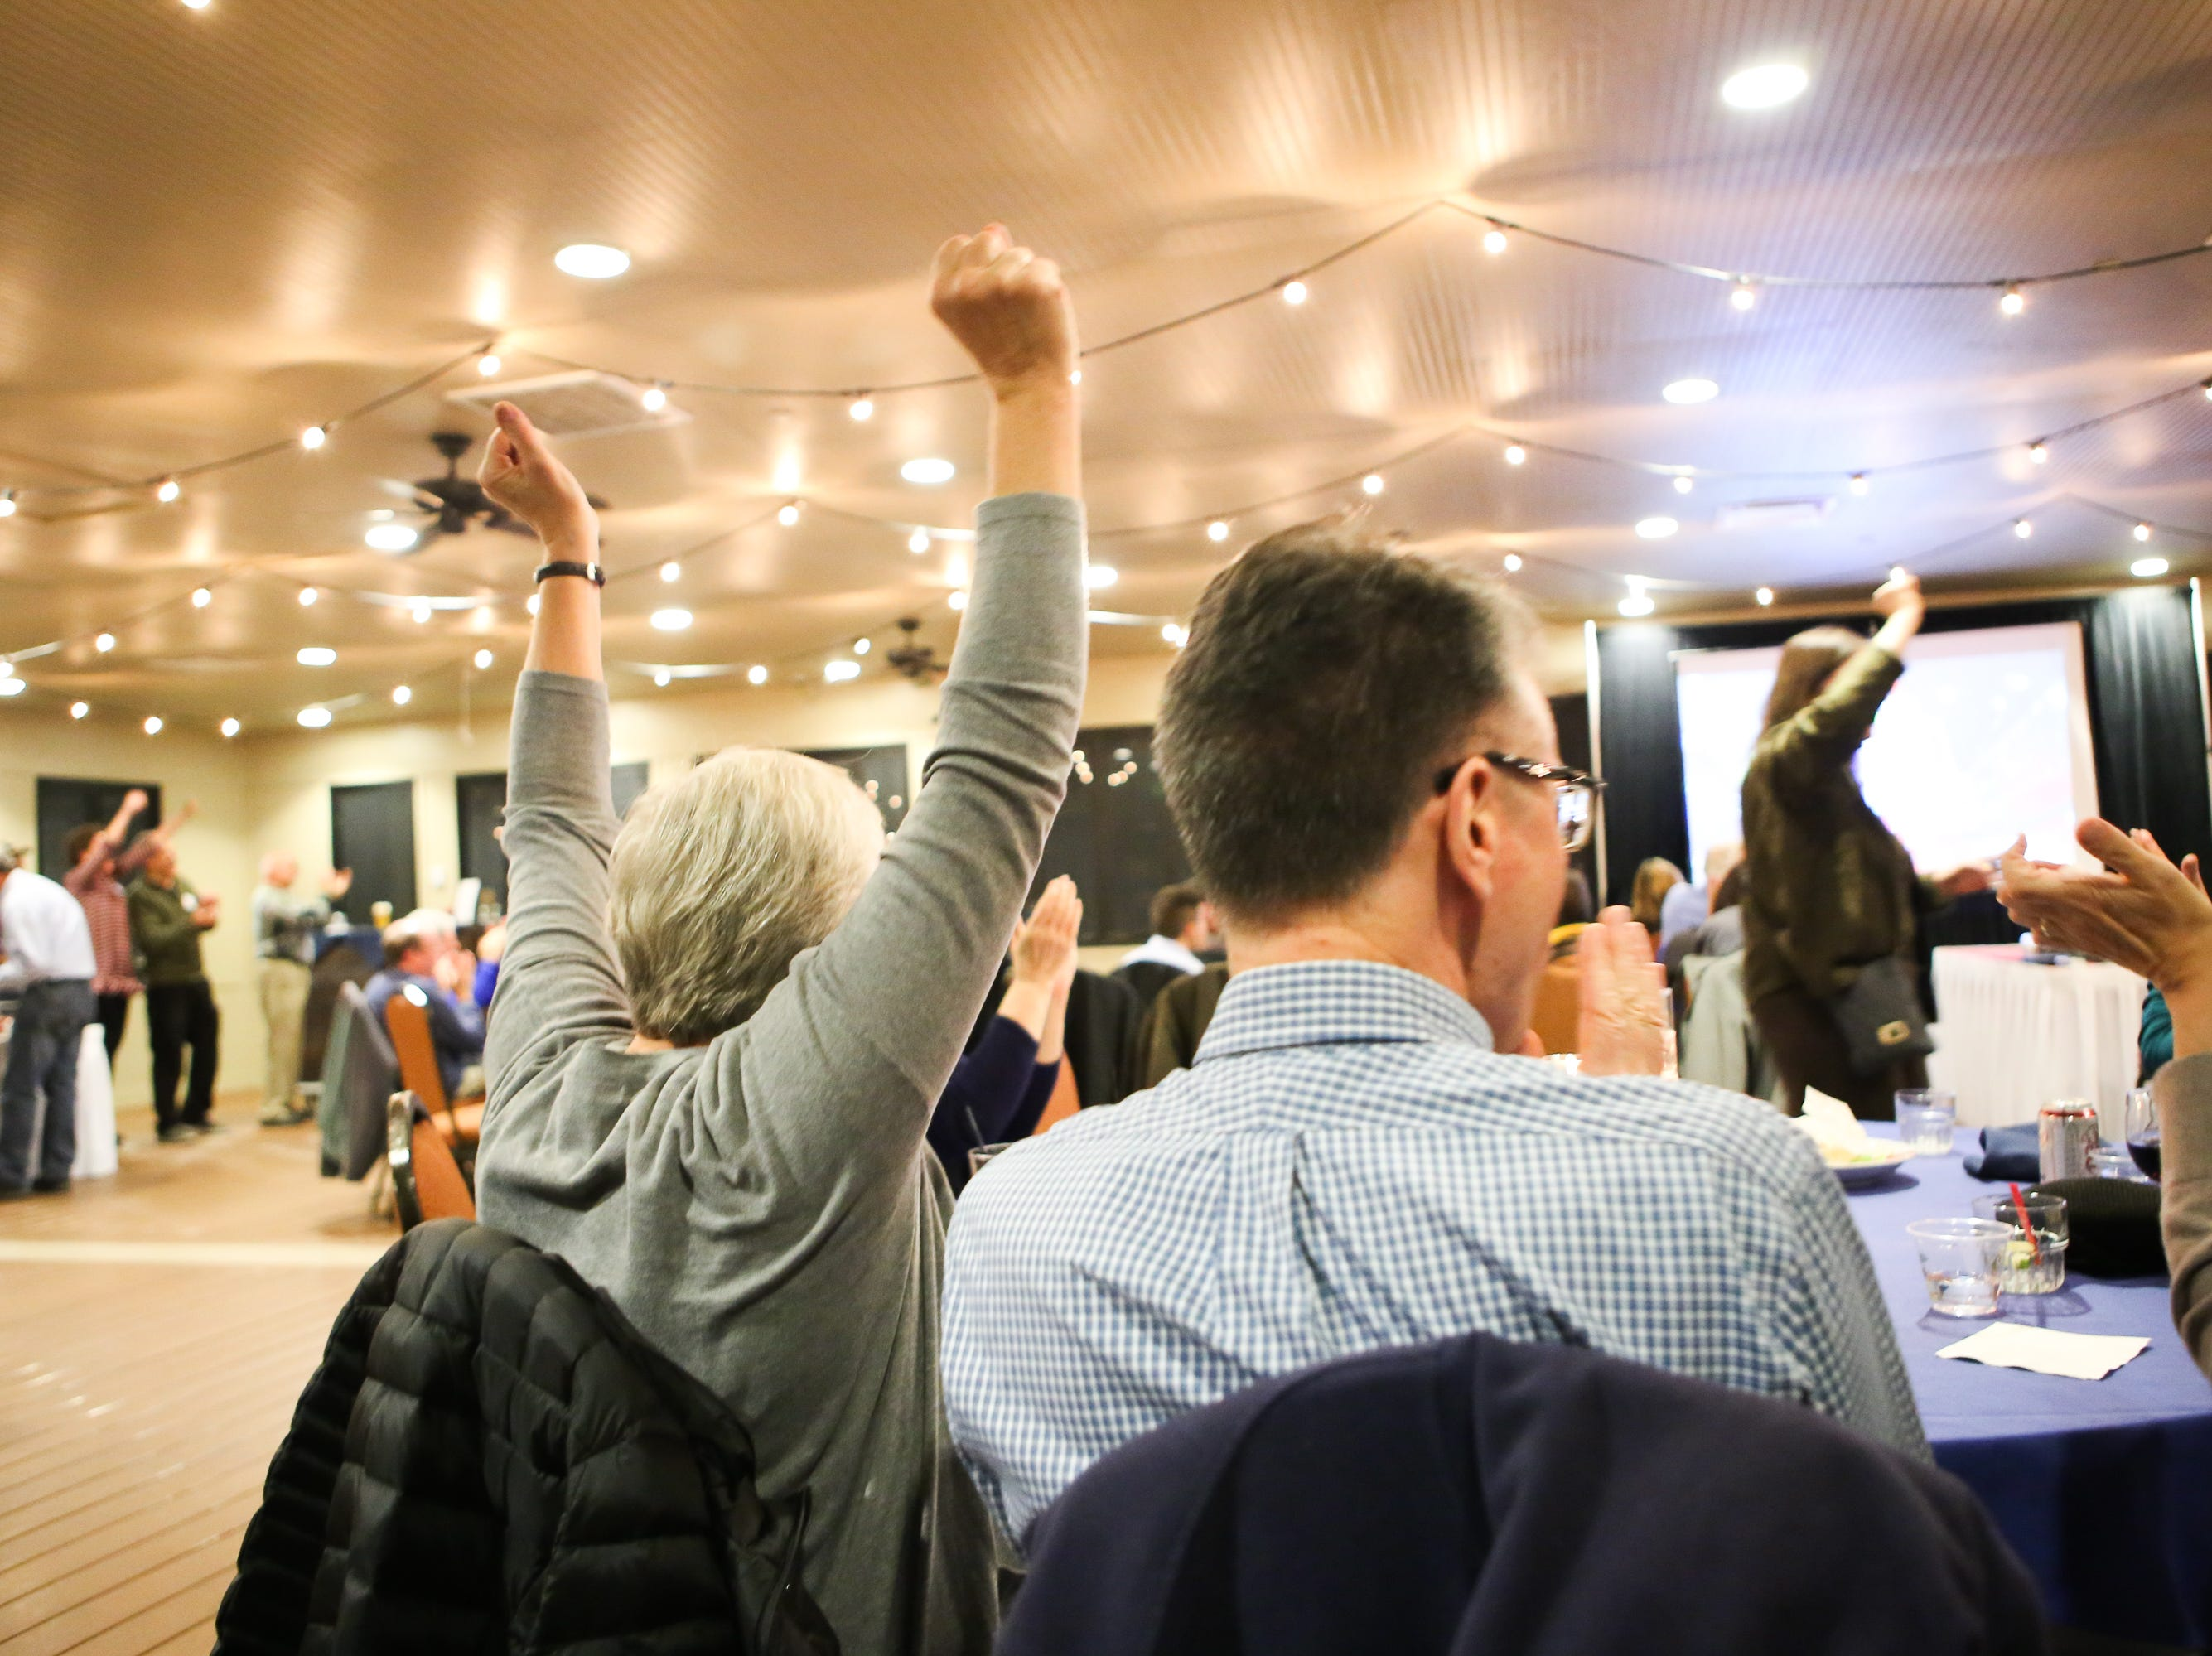 Linda Akey cheers with other attendees of the Democratic watch party at the Fort Collins Marriott after votes roll in favoring the Democrats.